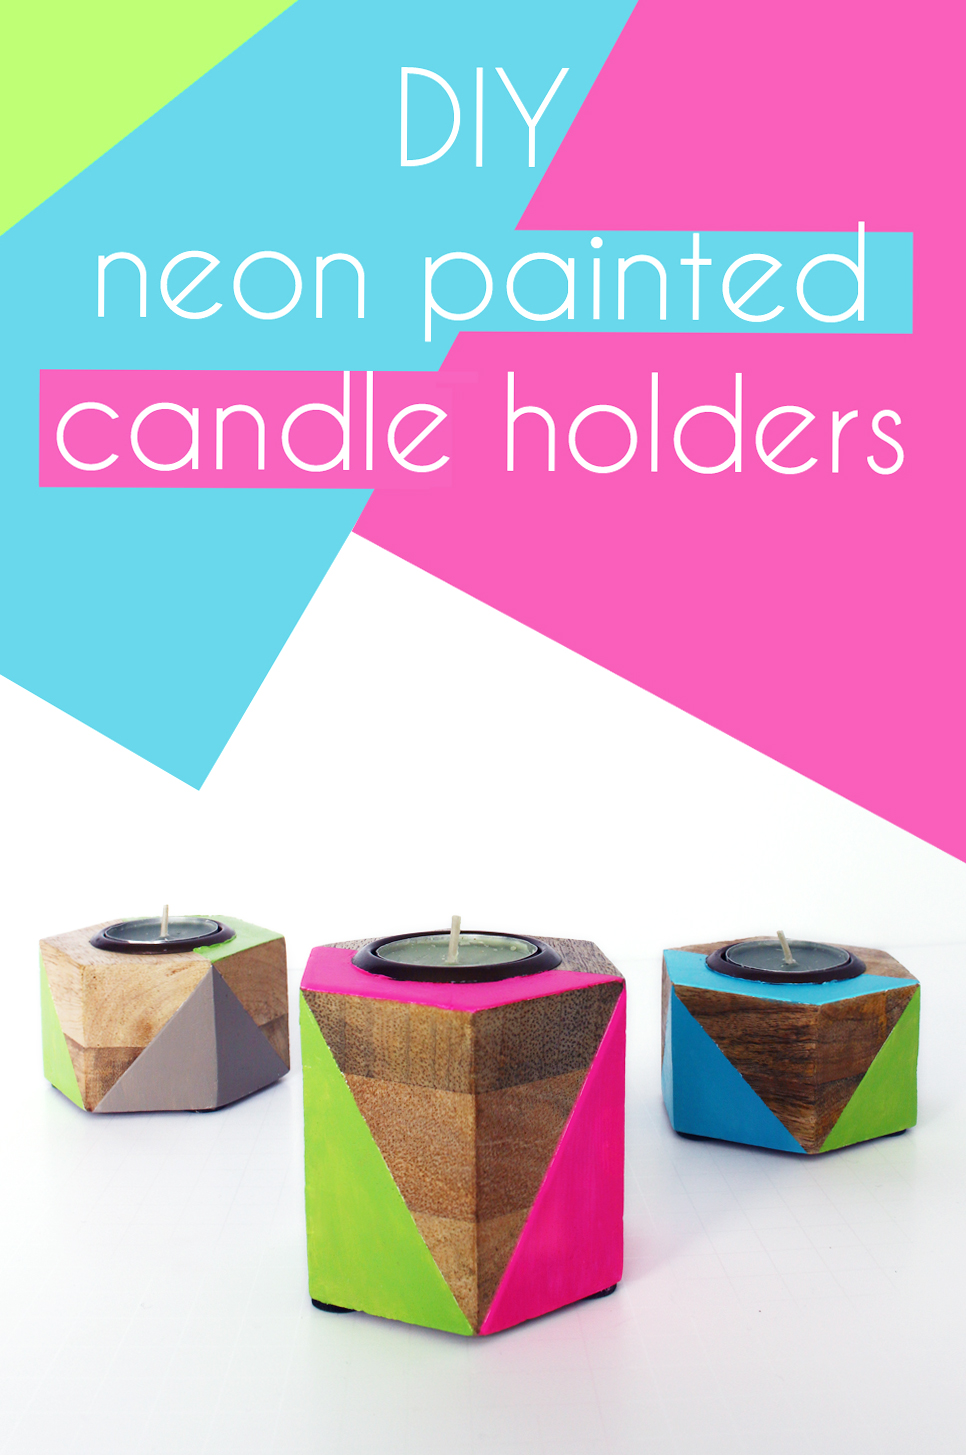 DIY Neon Painted Geometric Candle Holders